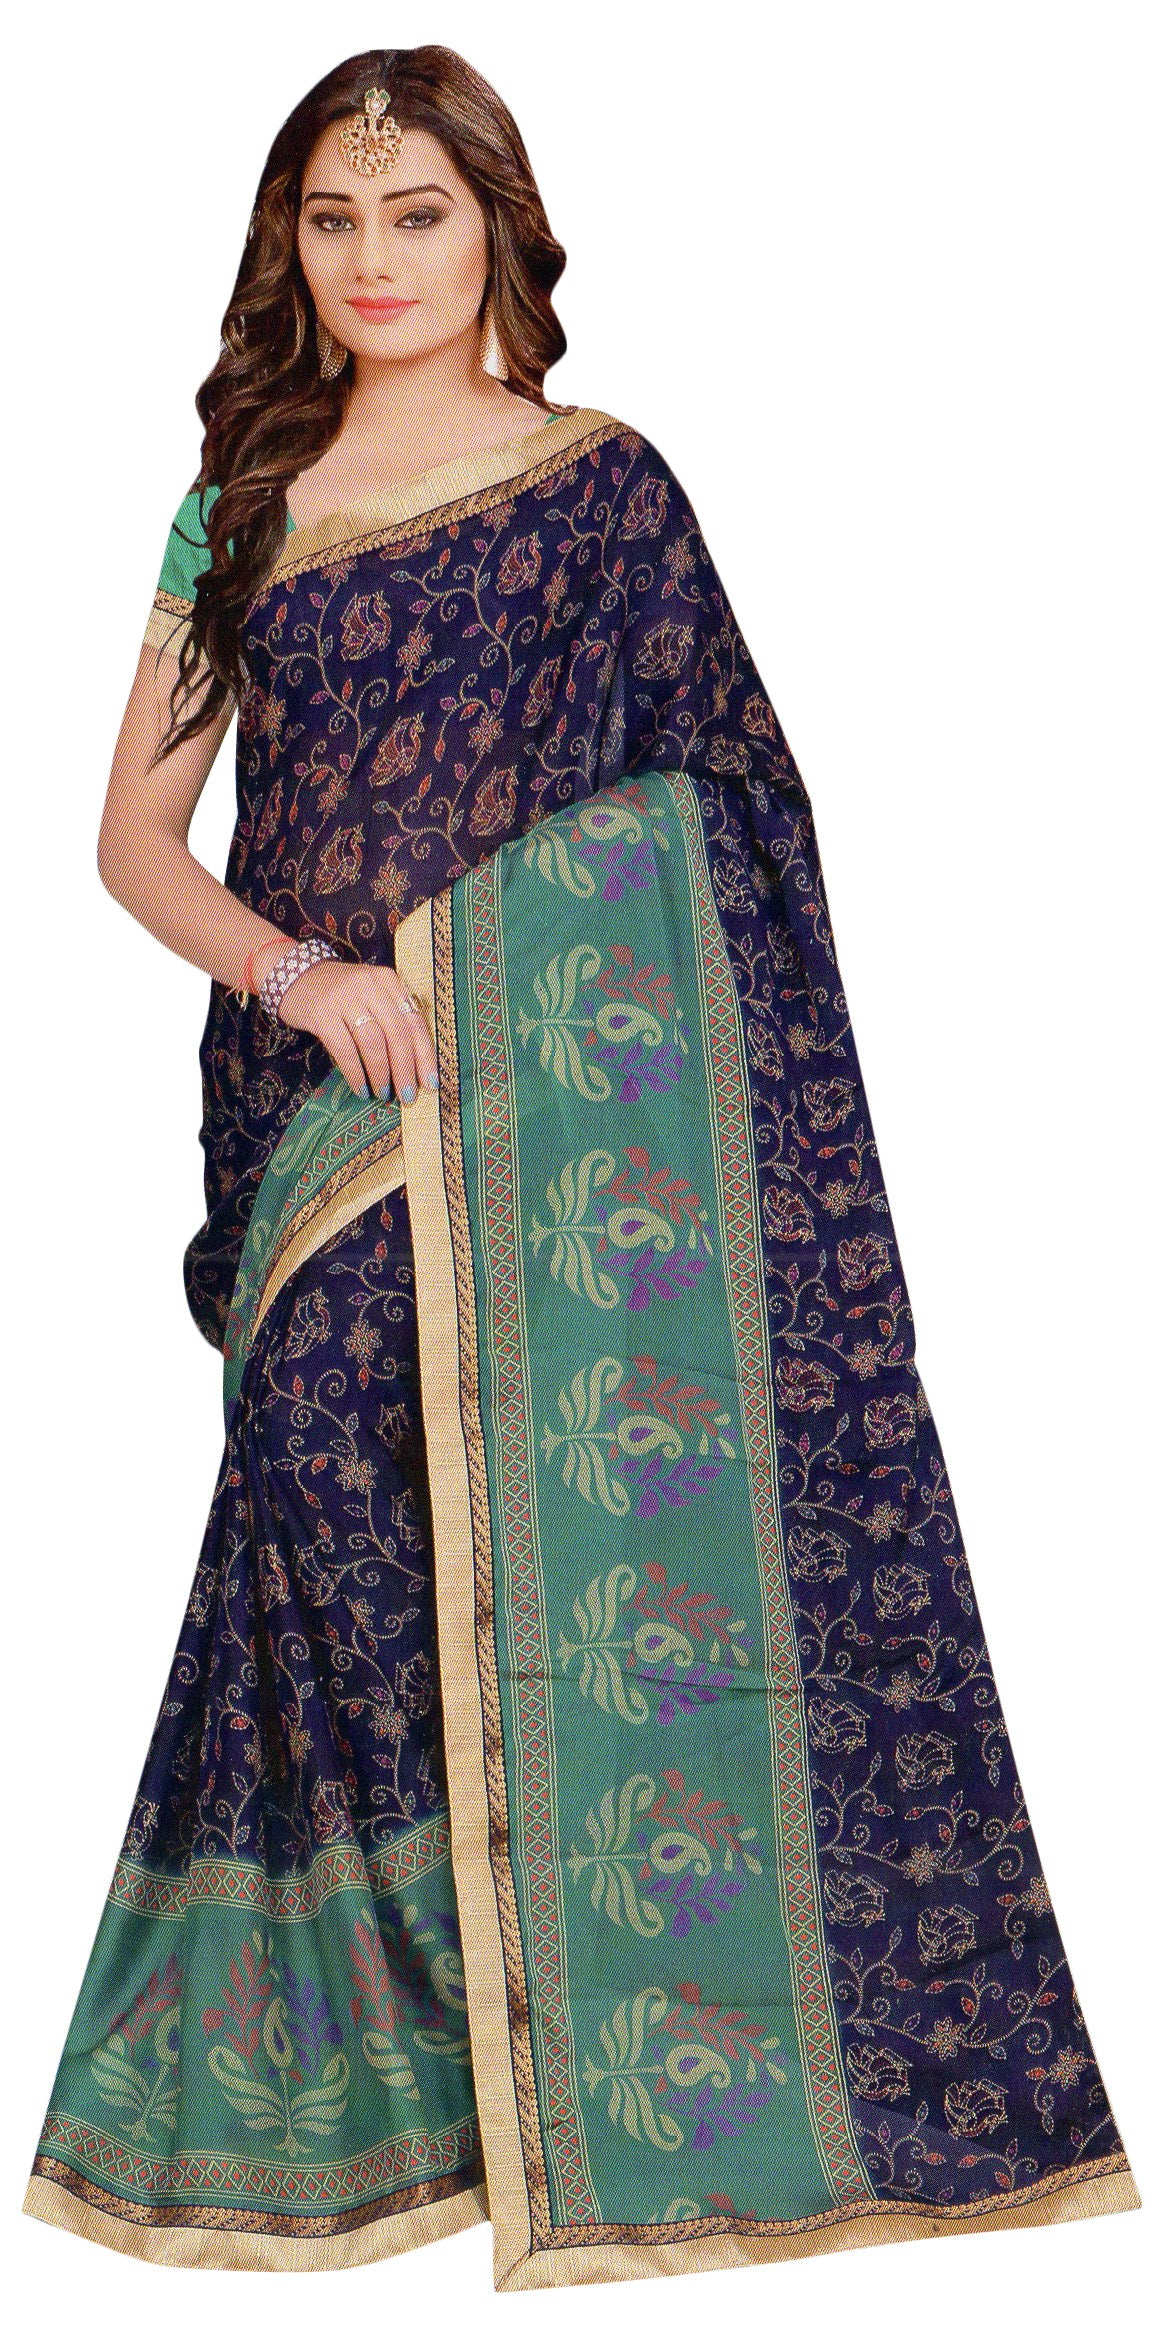 Jyothi-2 Printed Synthetic Saree With Blouse Piece Saree (Green) By Indians Boutique